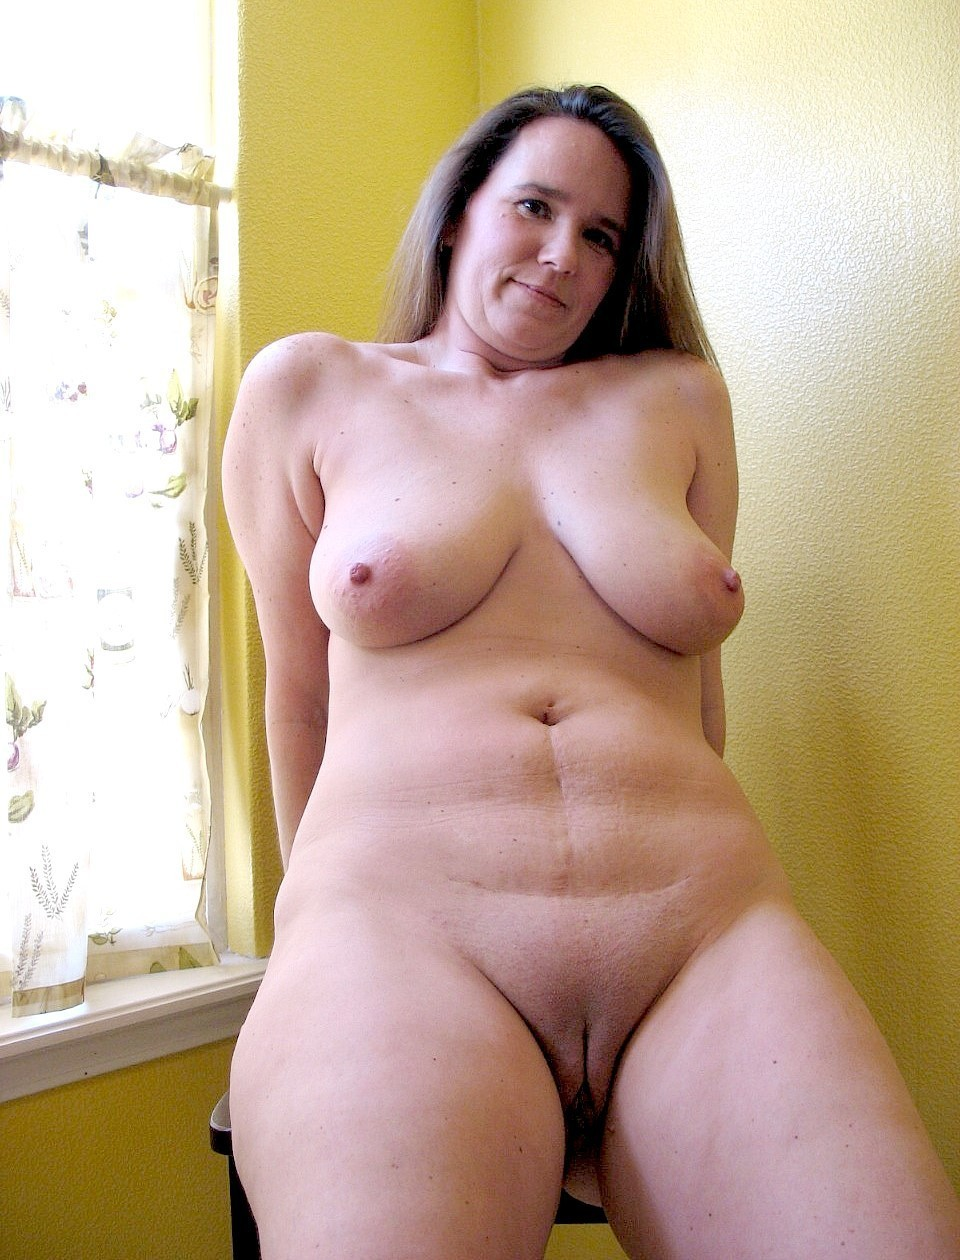 This free full length chubby matures